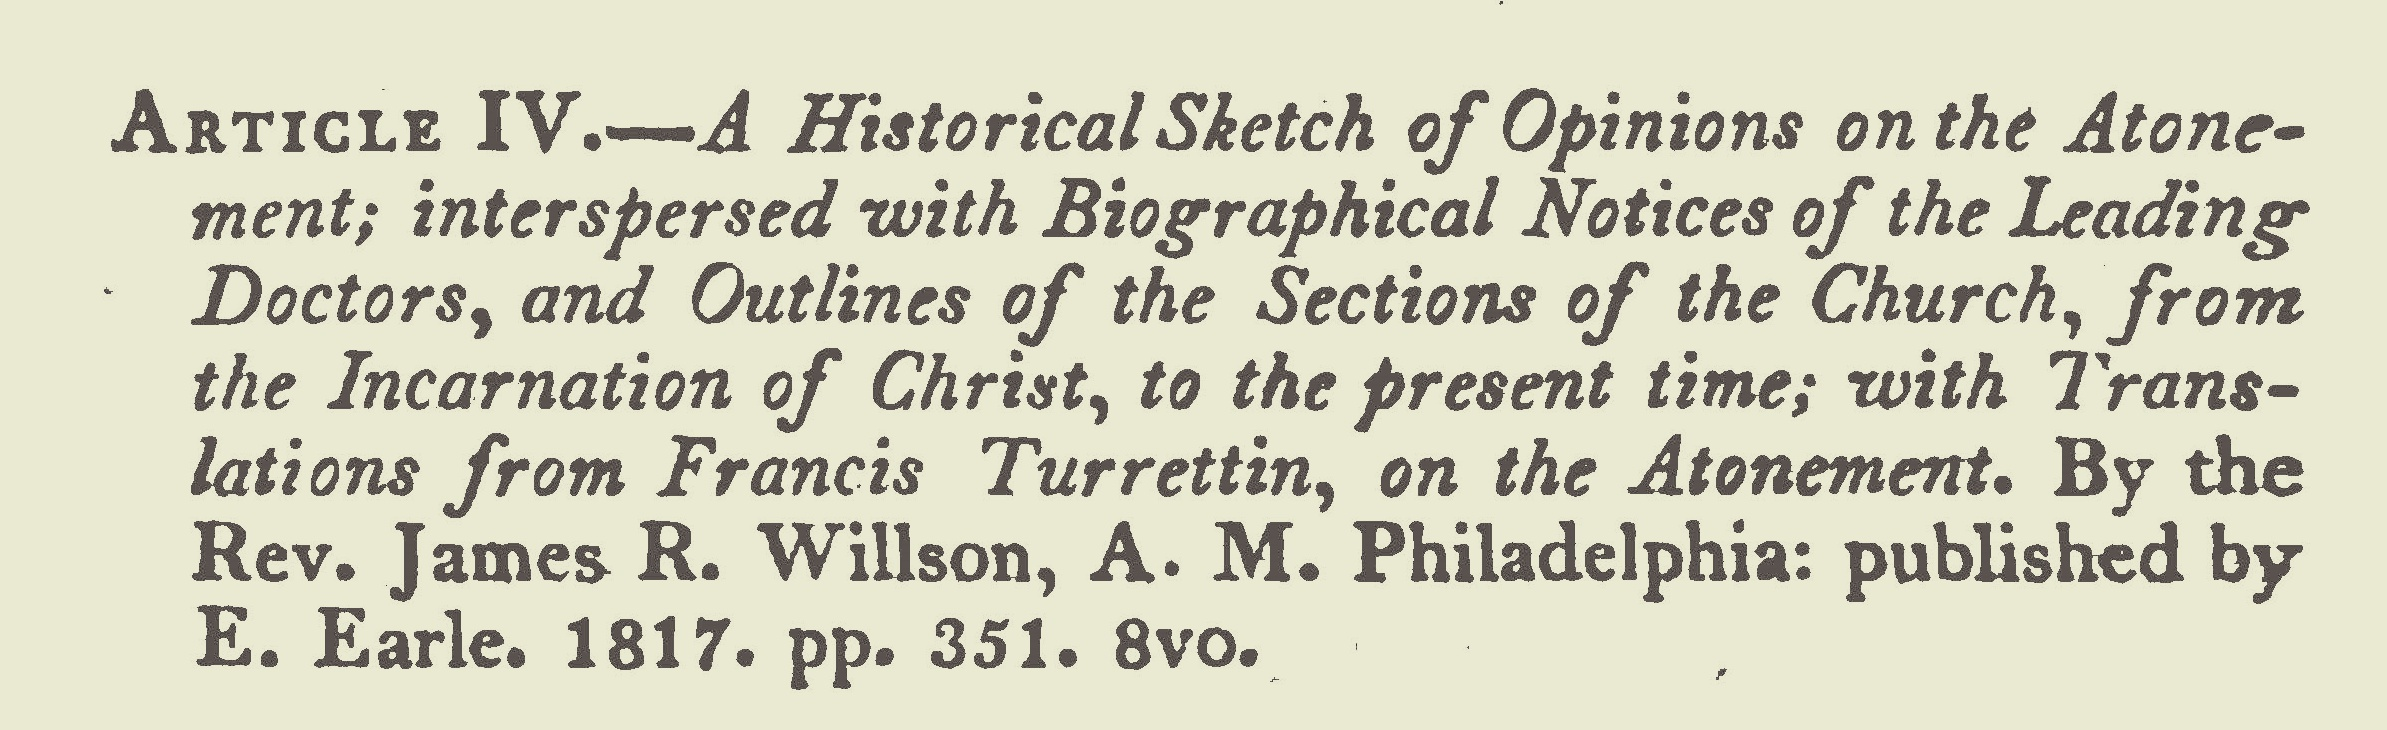 Ely, Ezra Stiles, Review of Willson on the Atonement Title Page.jpg